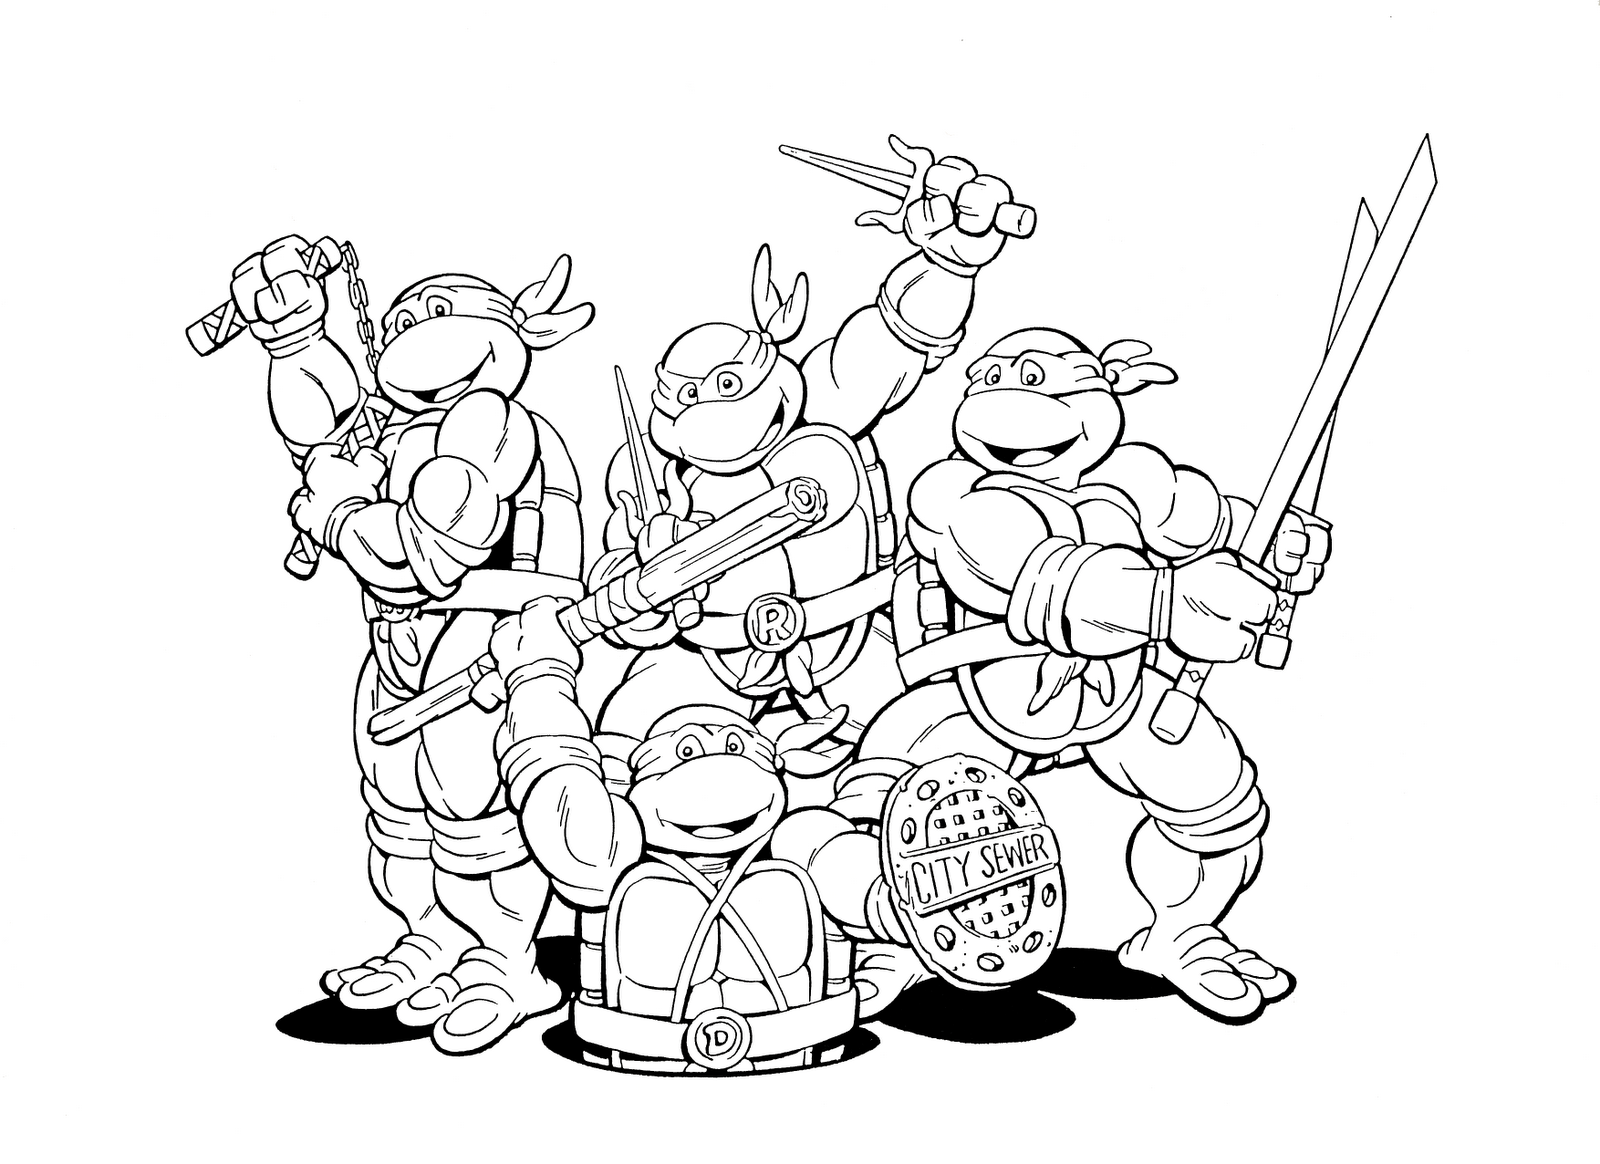 Mutant Ninja Turtles Coloring Pages | Chloe\'s 4th Birthday ...